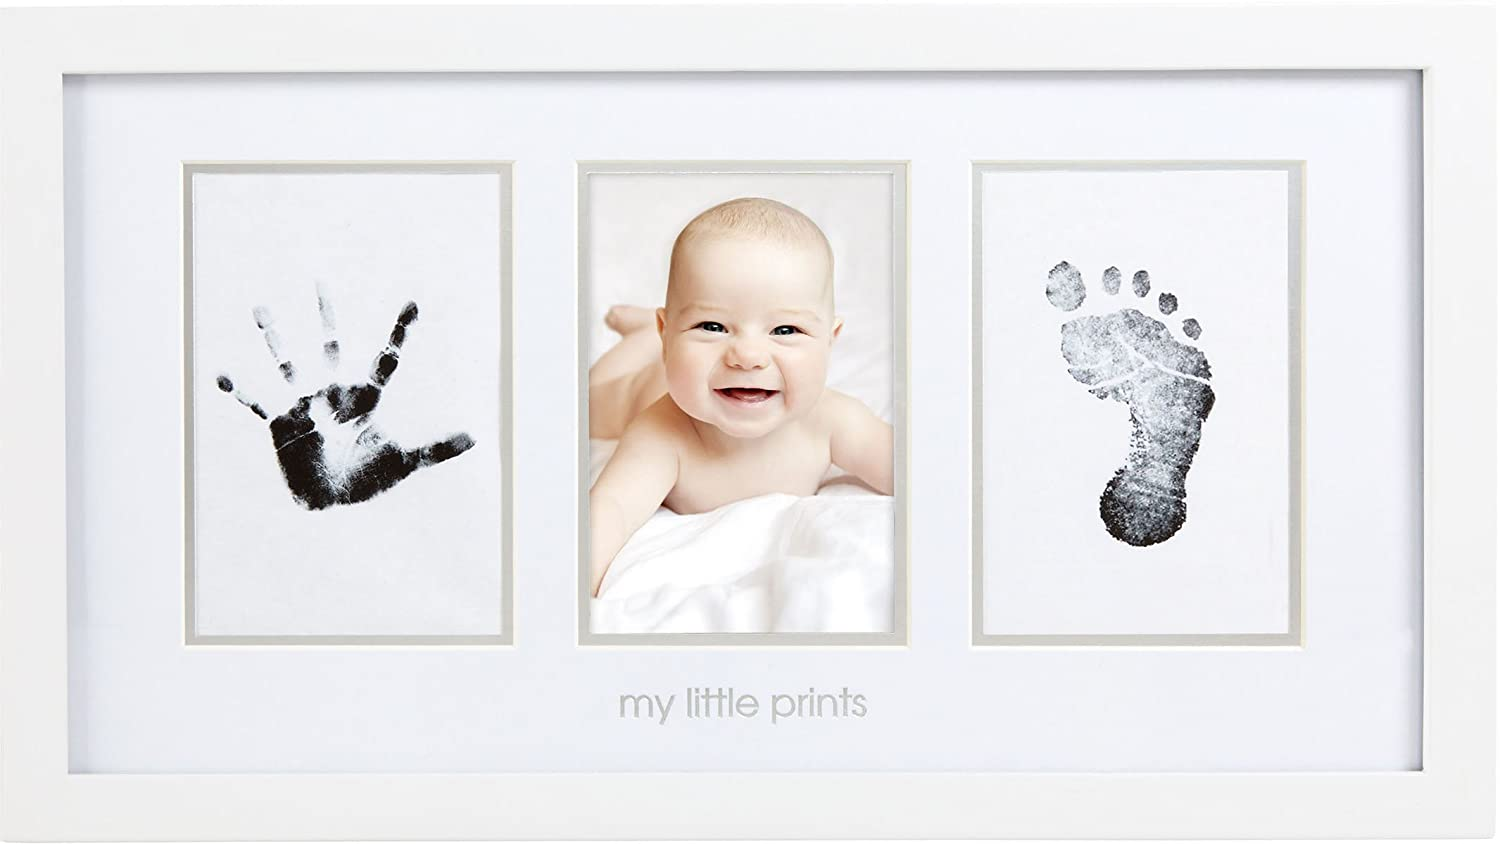 Pearhead Babyprints Newborn Baby Handprint and Footprint Photo Frame Kit with an Included Clean-Touch Ink Pad to Create Baby's Prints - A Perfect Baby Shower Gift 13032